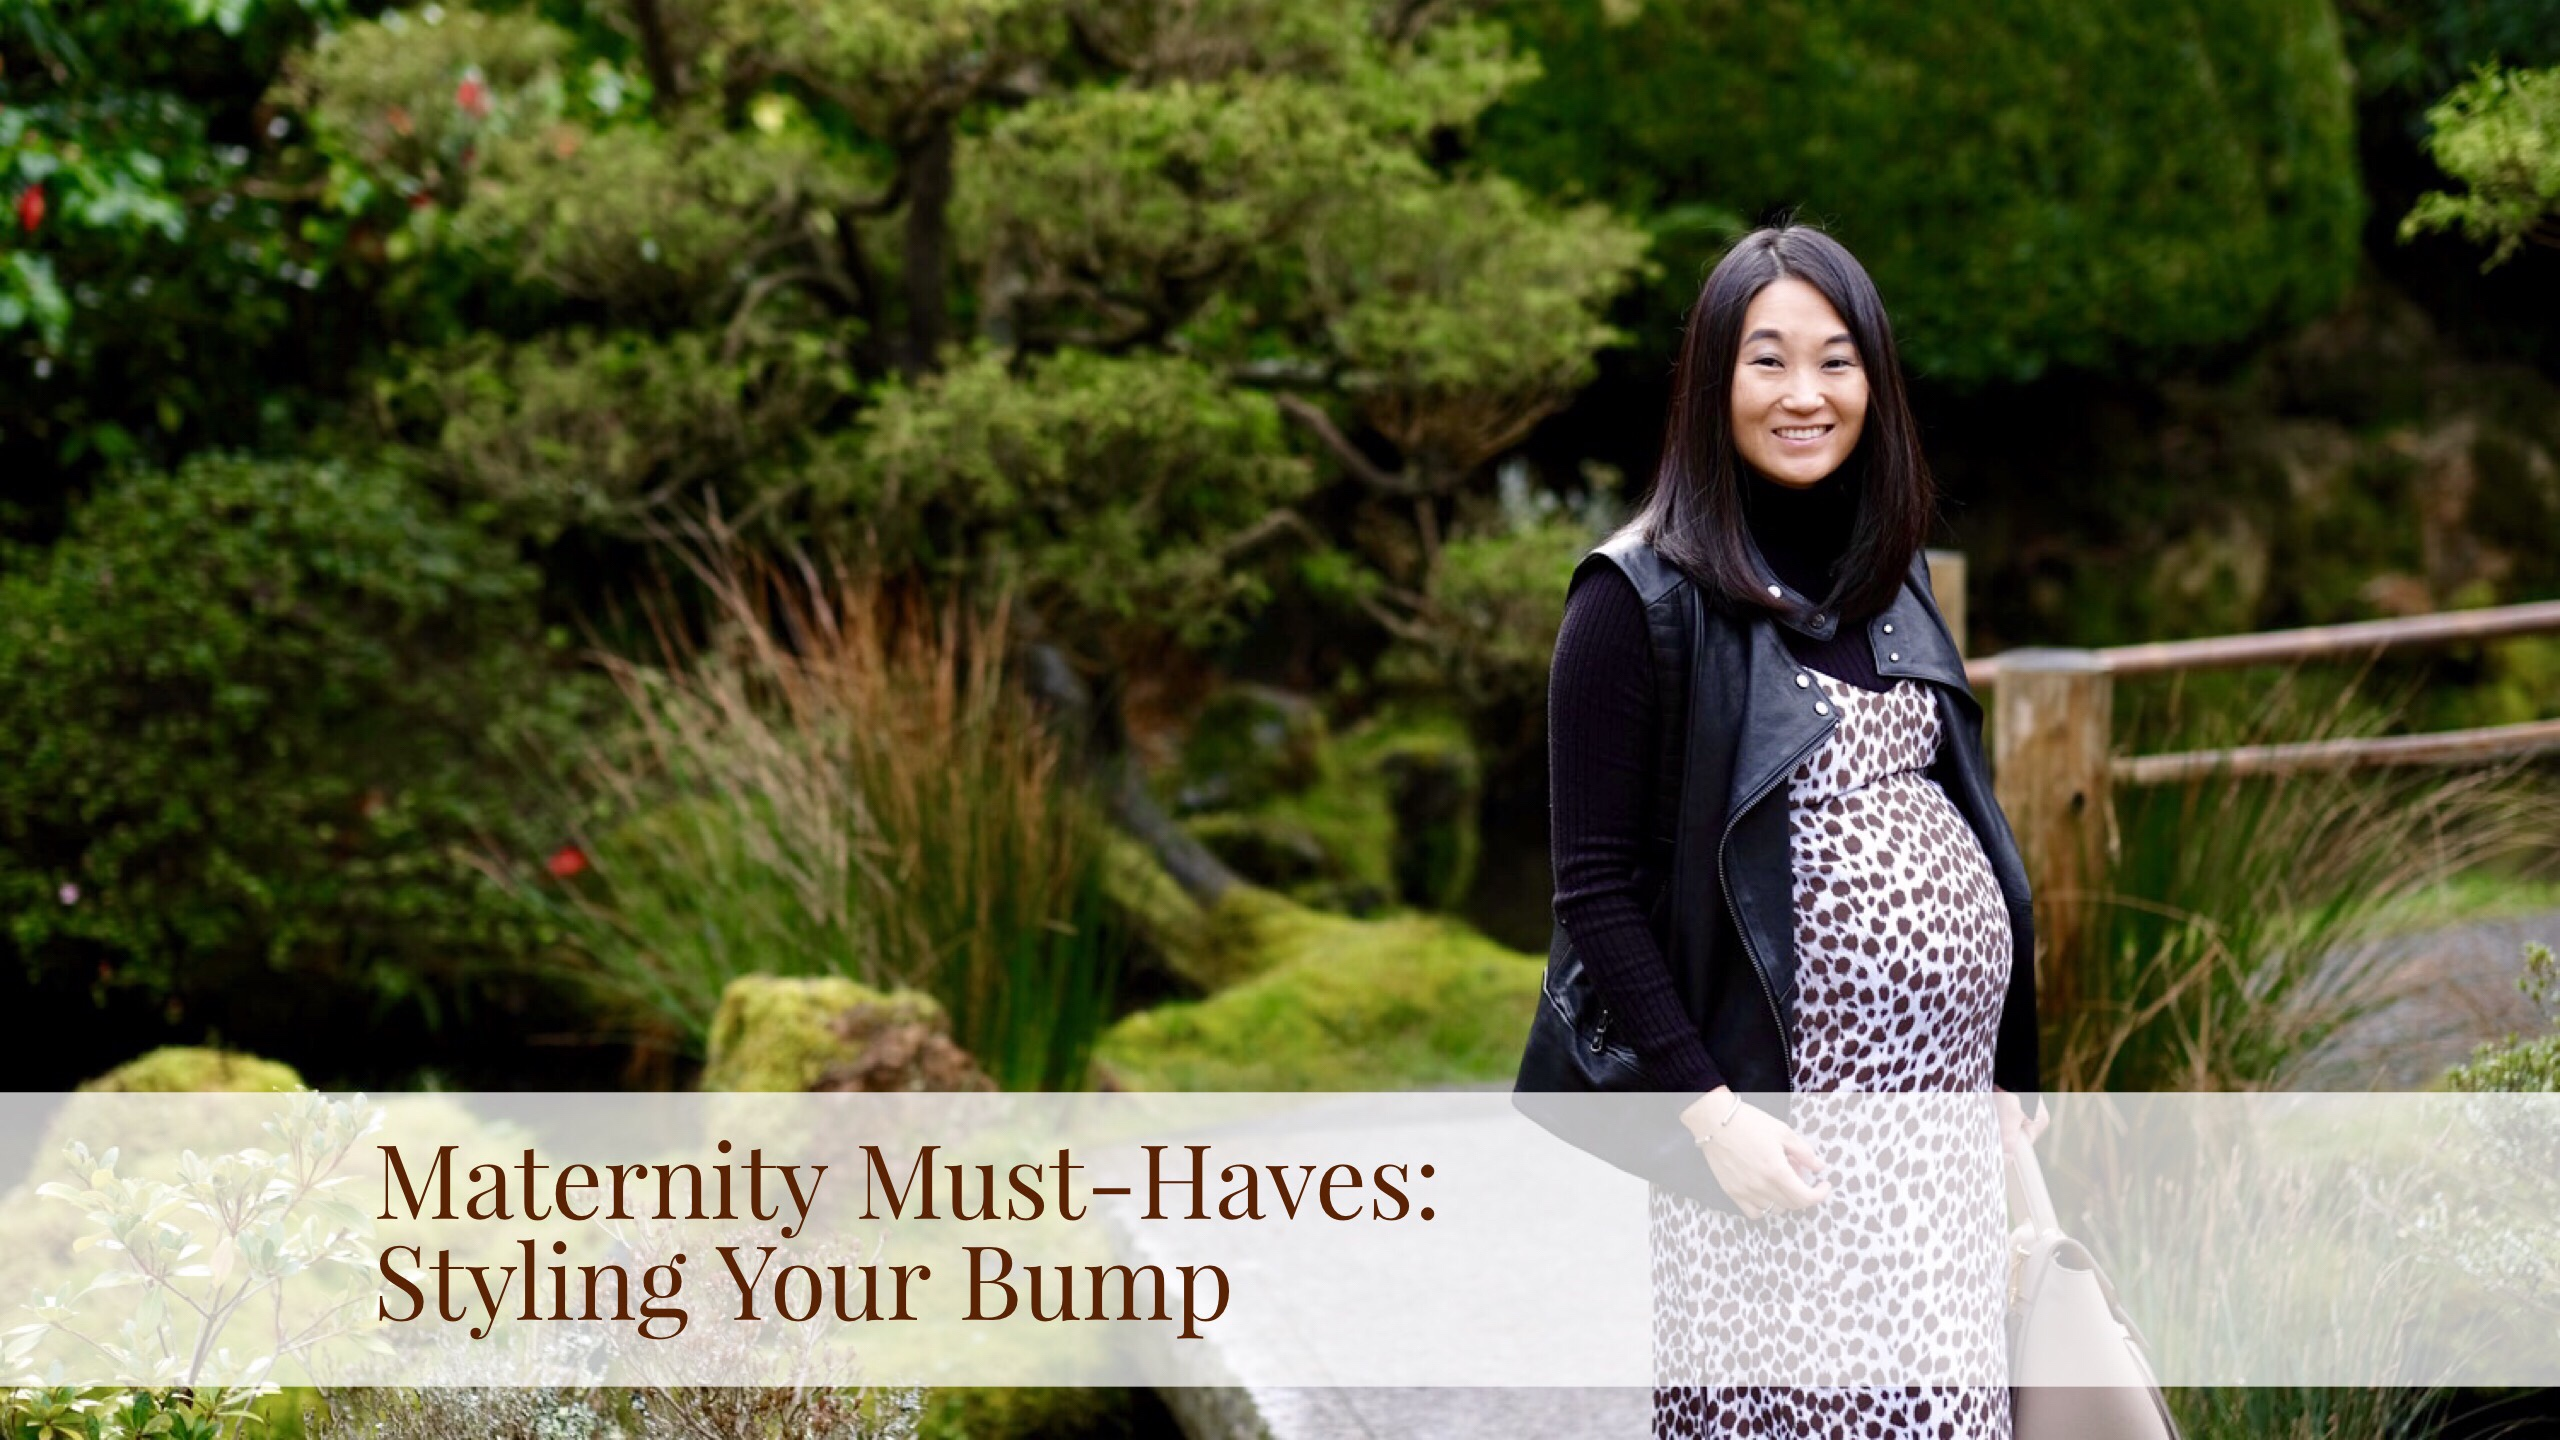 aa034452ad496 Maternity Must-Haves - Styling Your Growing Belly - Bash & Co.